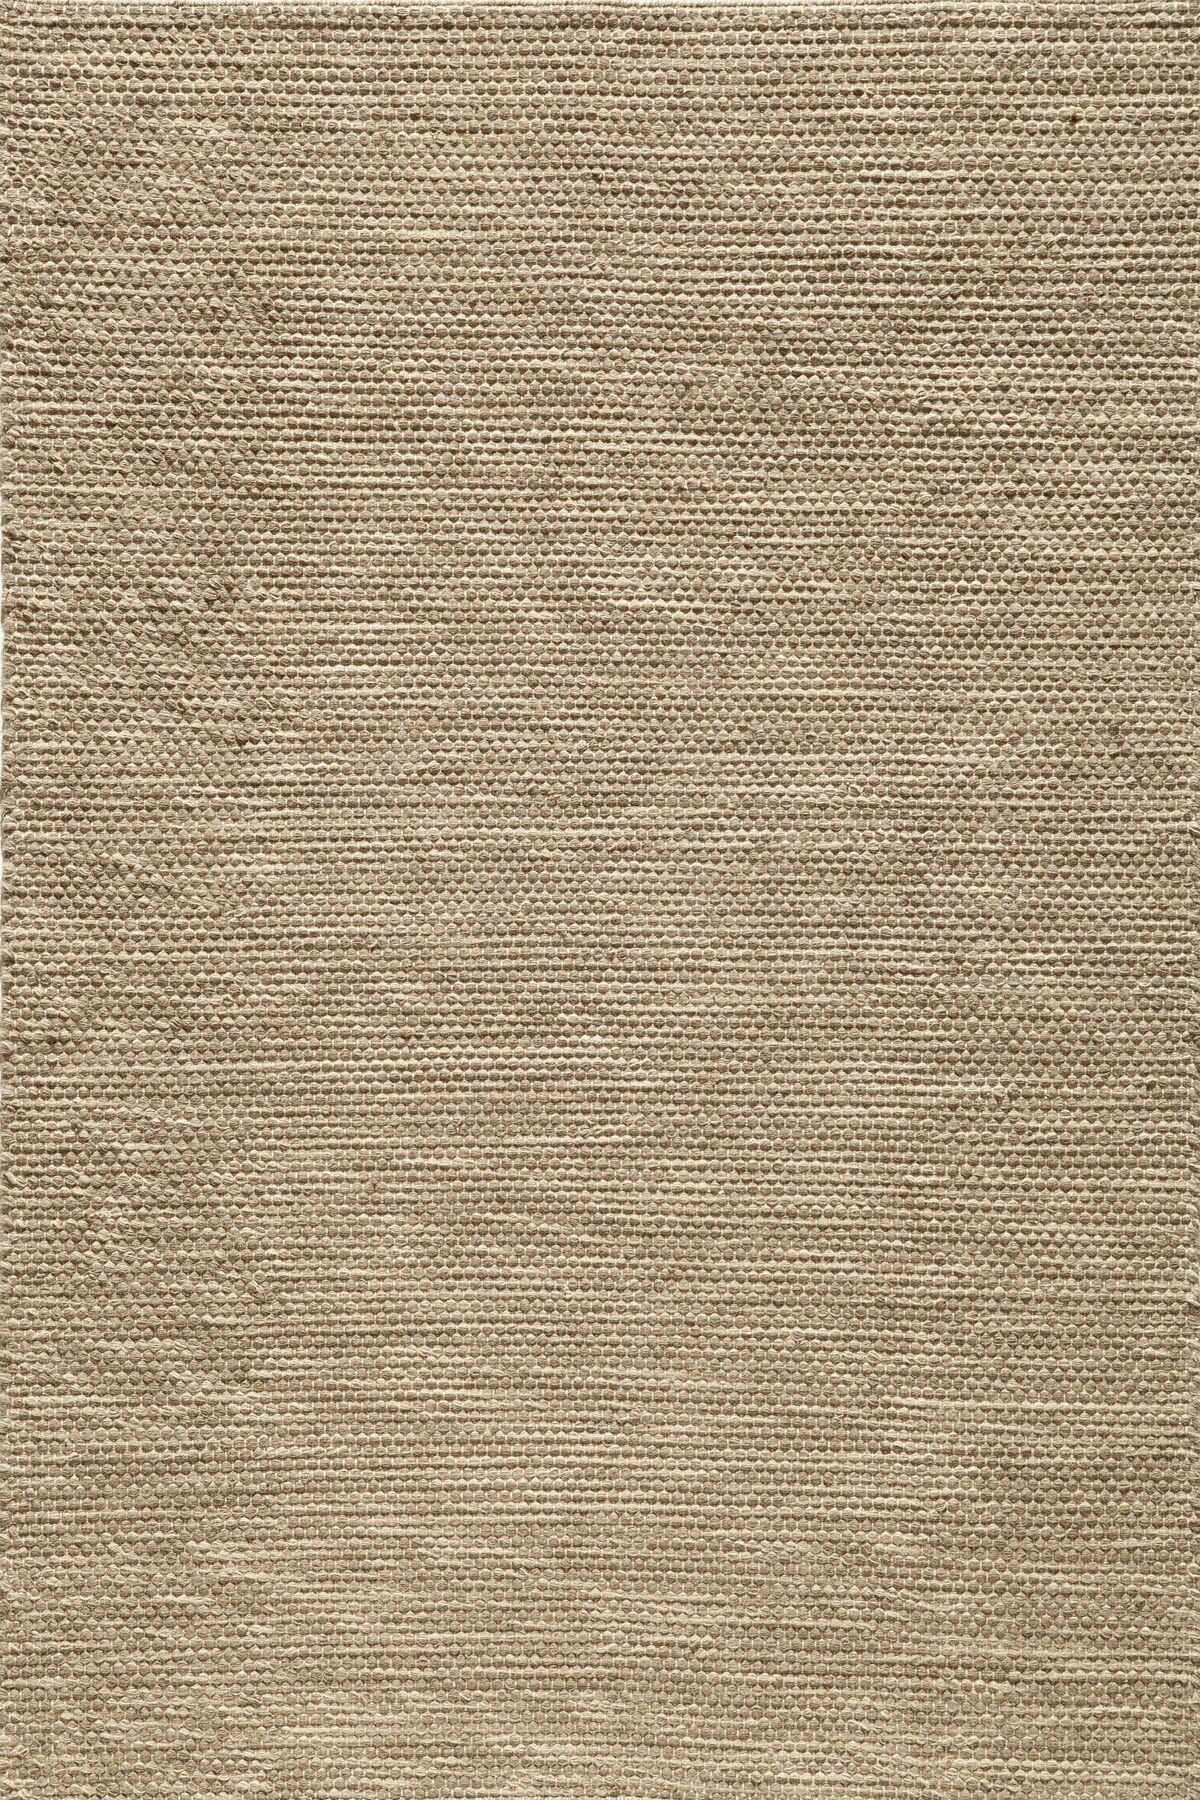 Epping Hand-Woven Natural Area Rug Rug Size: Rectangle 3'6